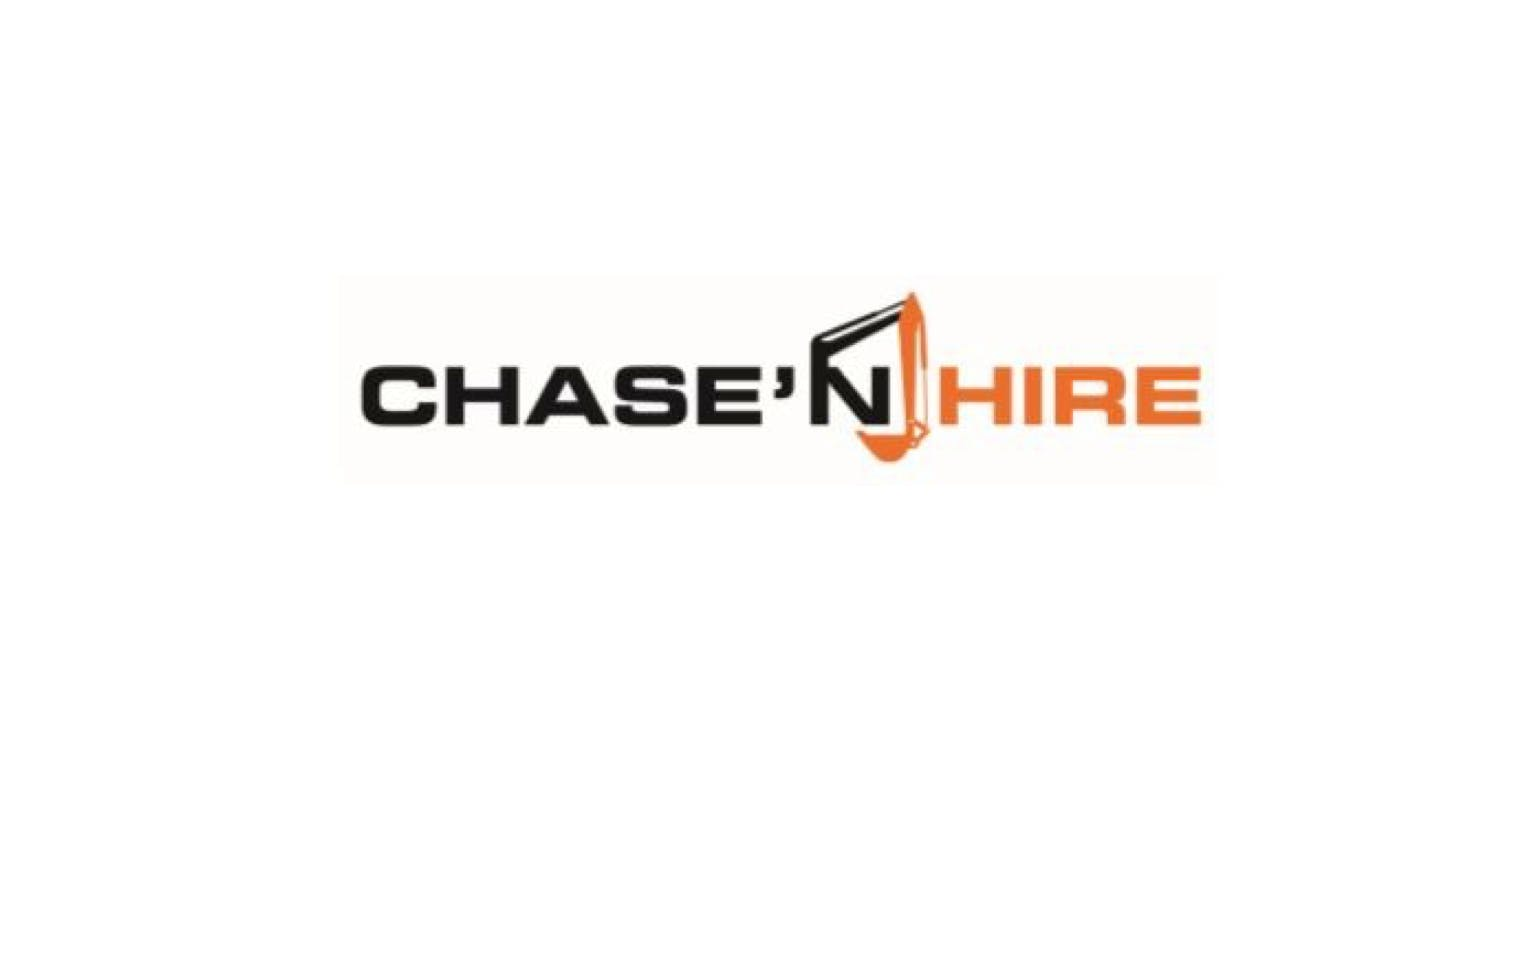 Chasen Hire